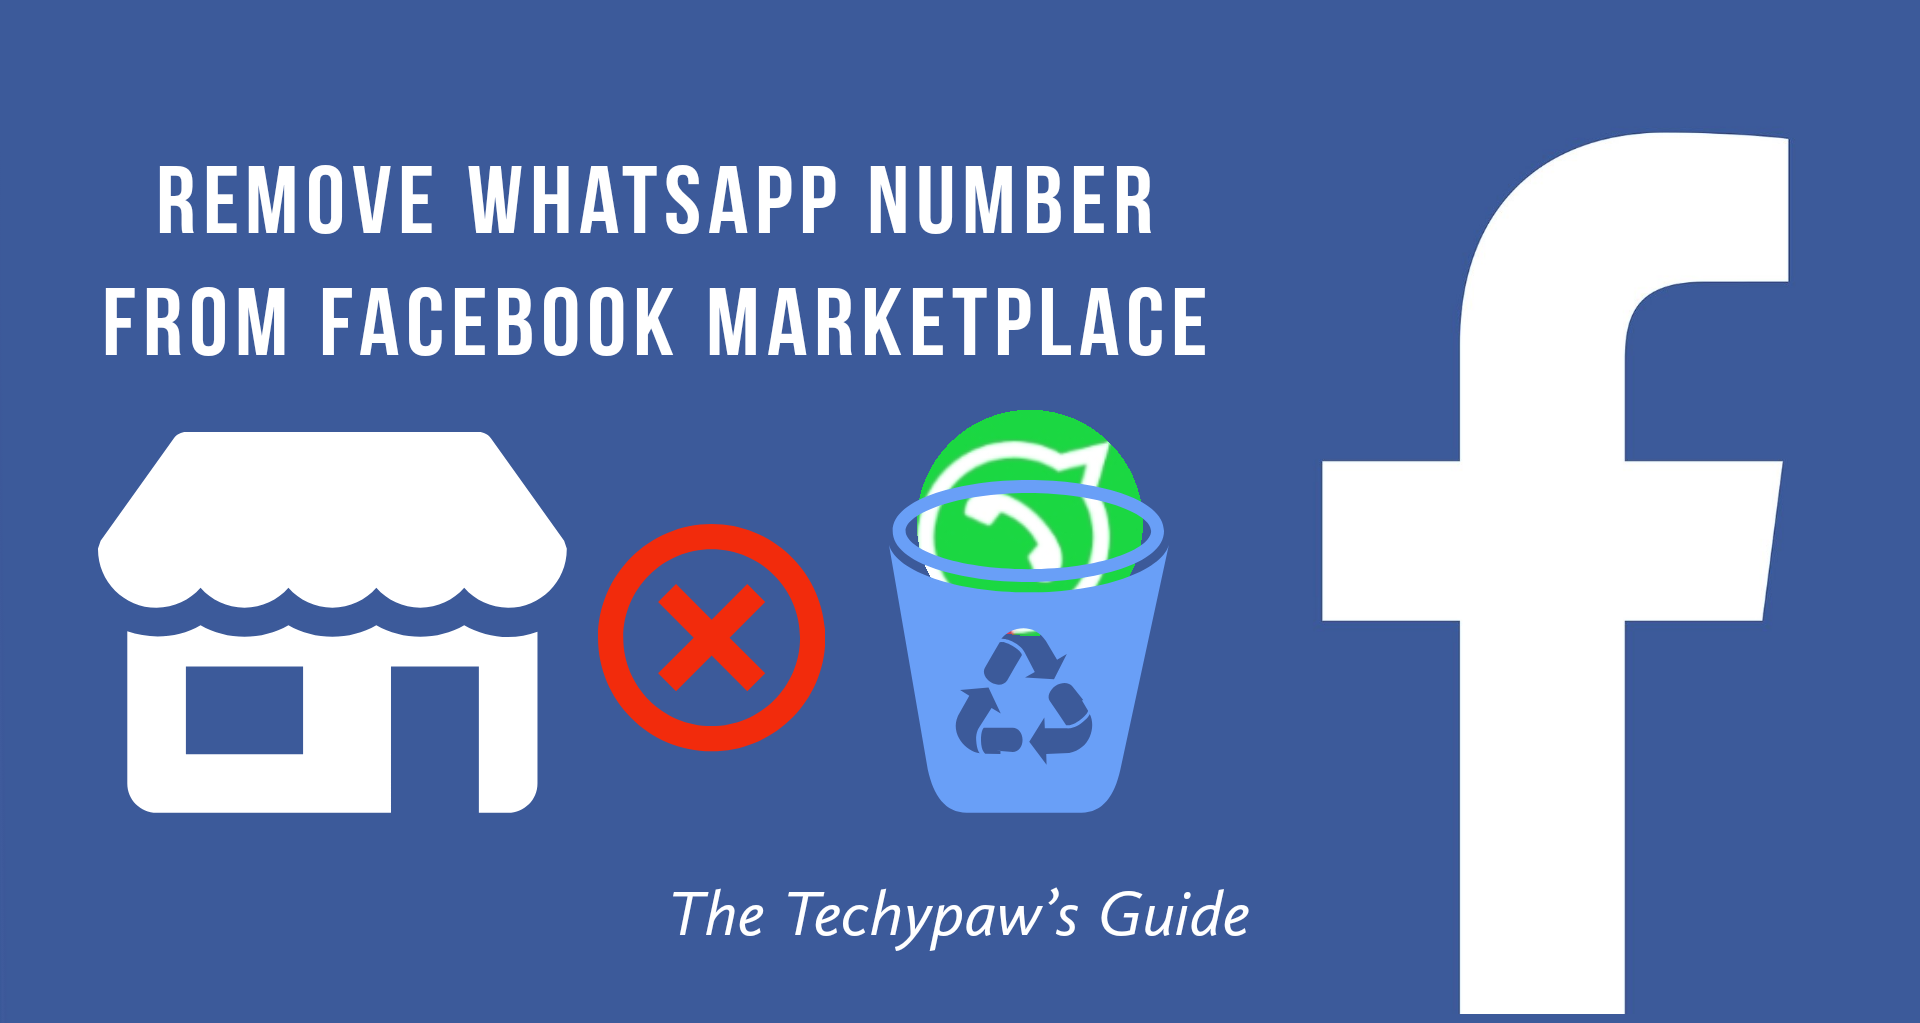 How to remove WhatsApp number from Facebook Marketplace?